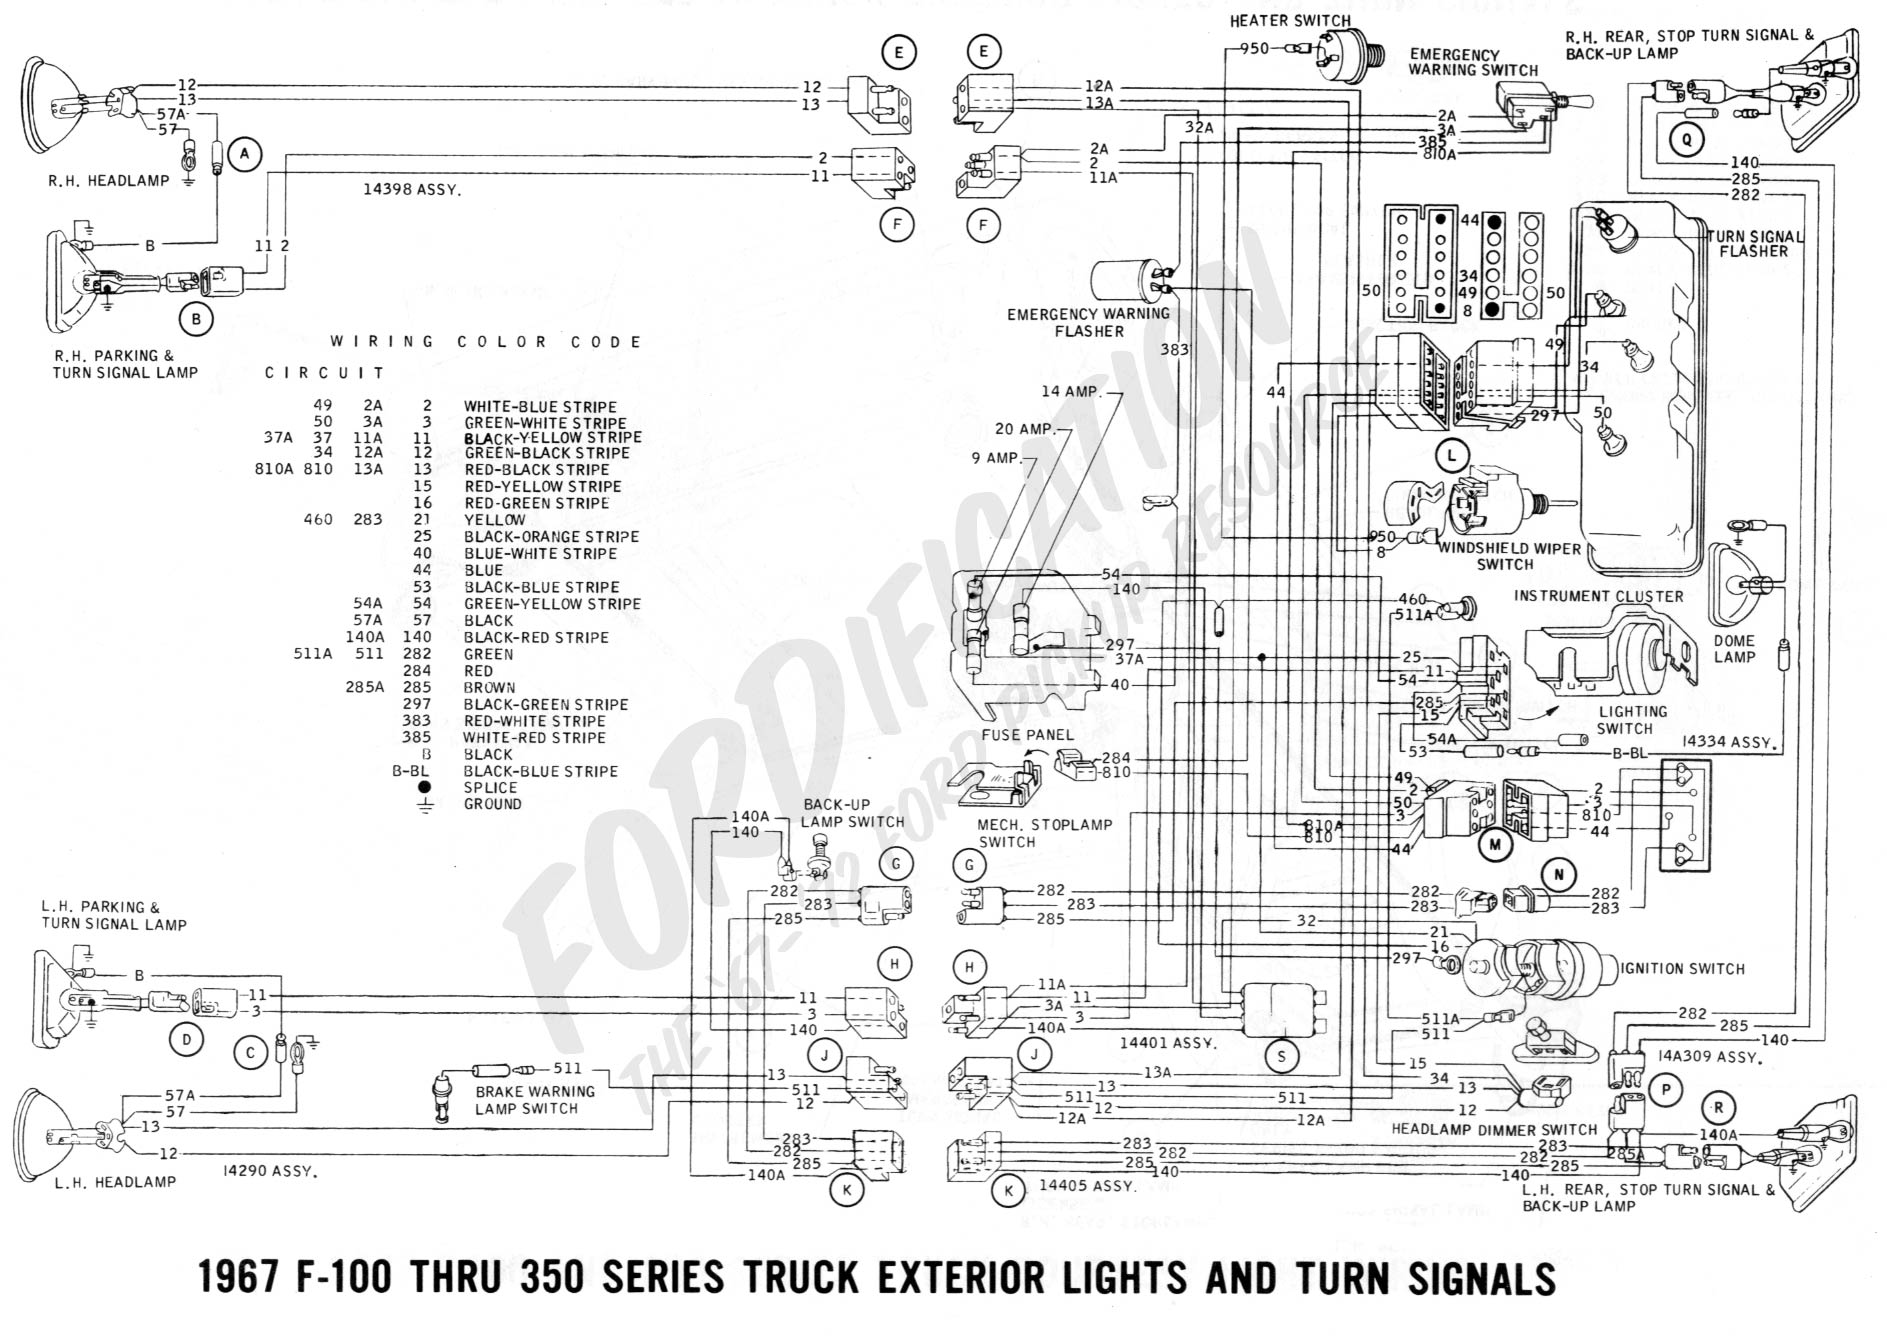 1994 Town Car Fuse Box Diagram Wiring Library 06 Lincoln Chevy Impala As Well 1973 Custom C10 Truck